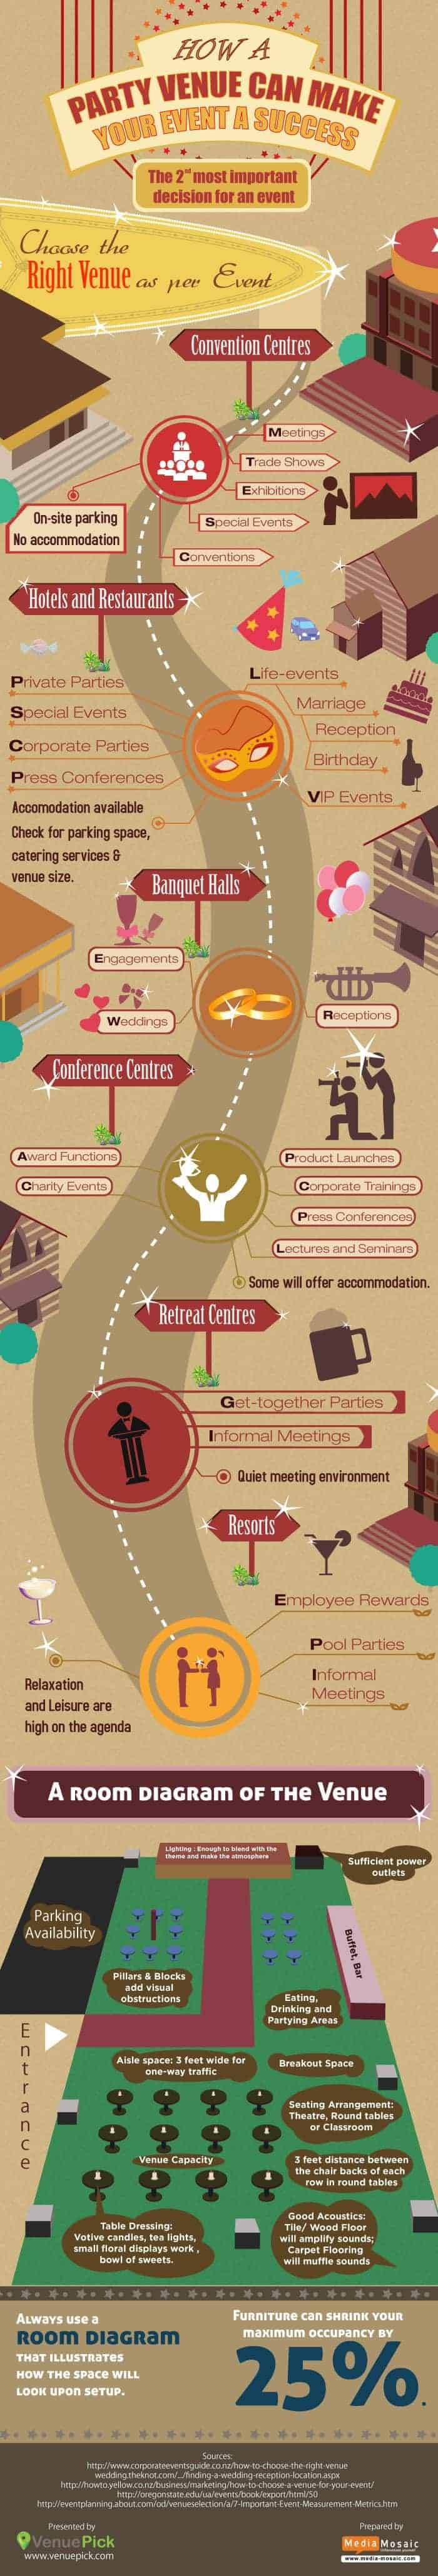 choose right venue for event infographic